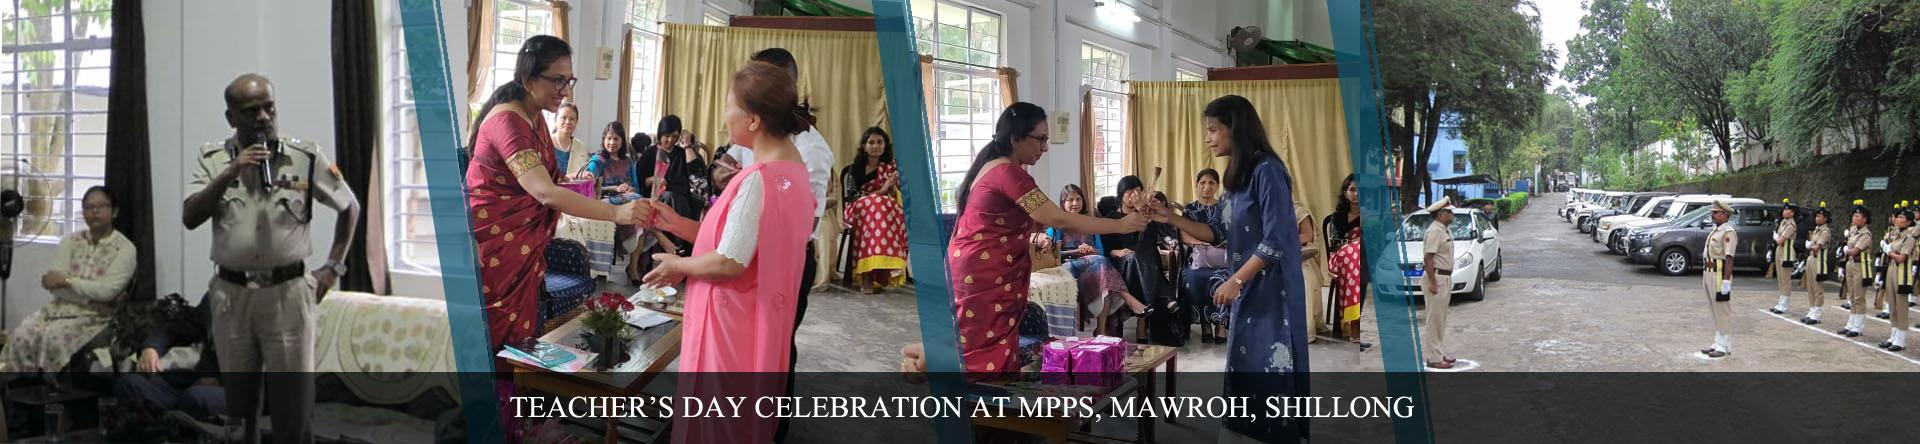 Teachers Day Celebration at MPPS, PTS, Mawroh